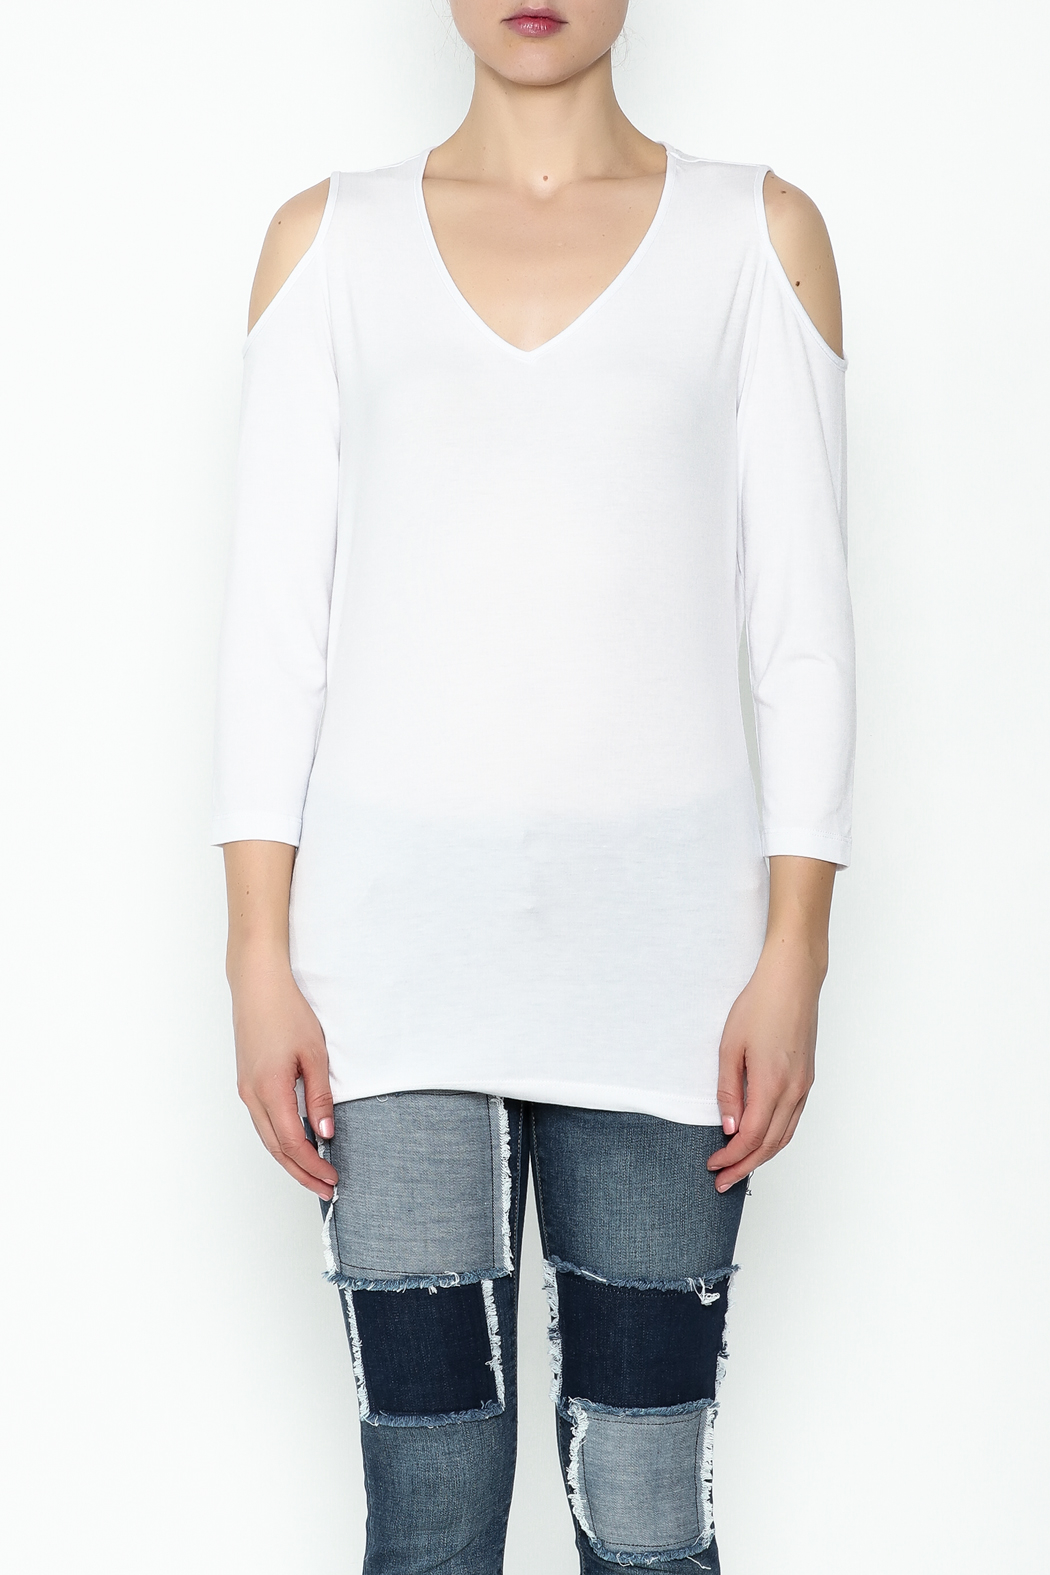 Conrad C White Cold Shoulder Top - Front Full Image